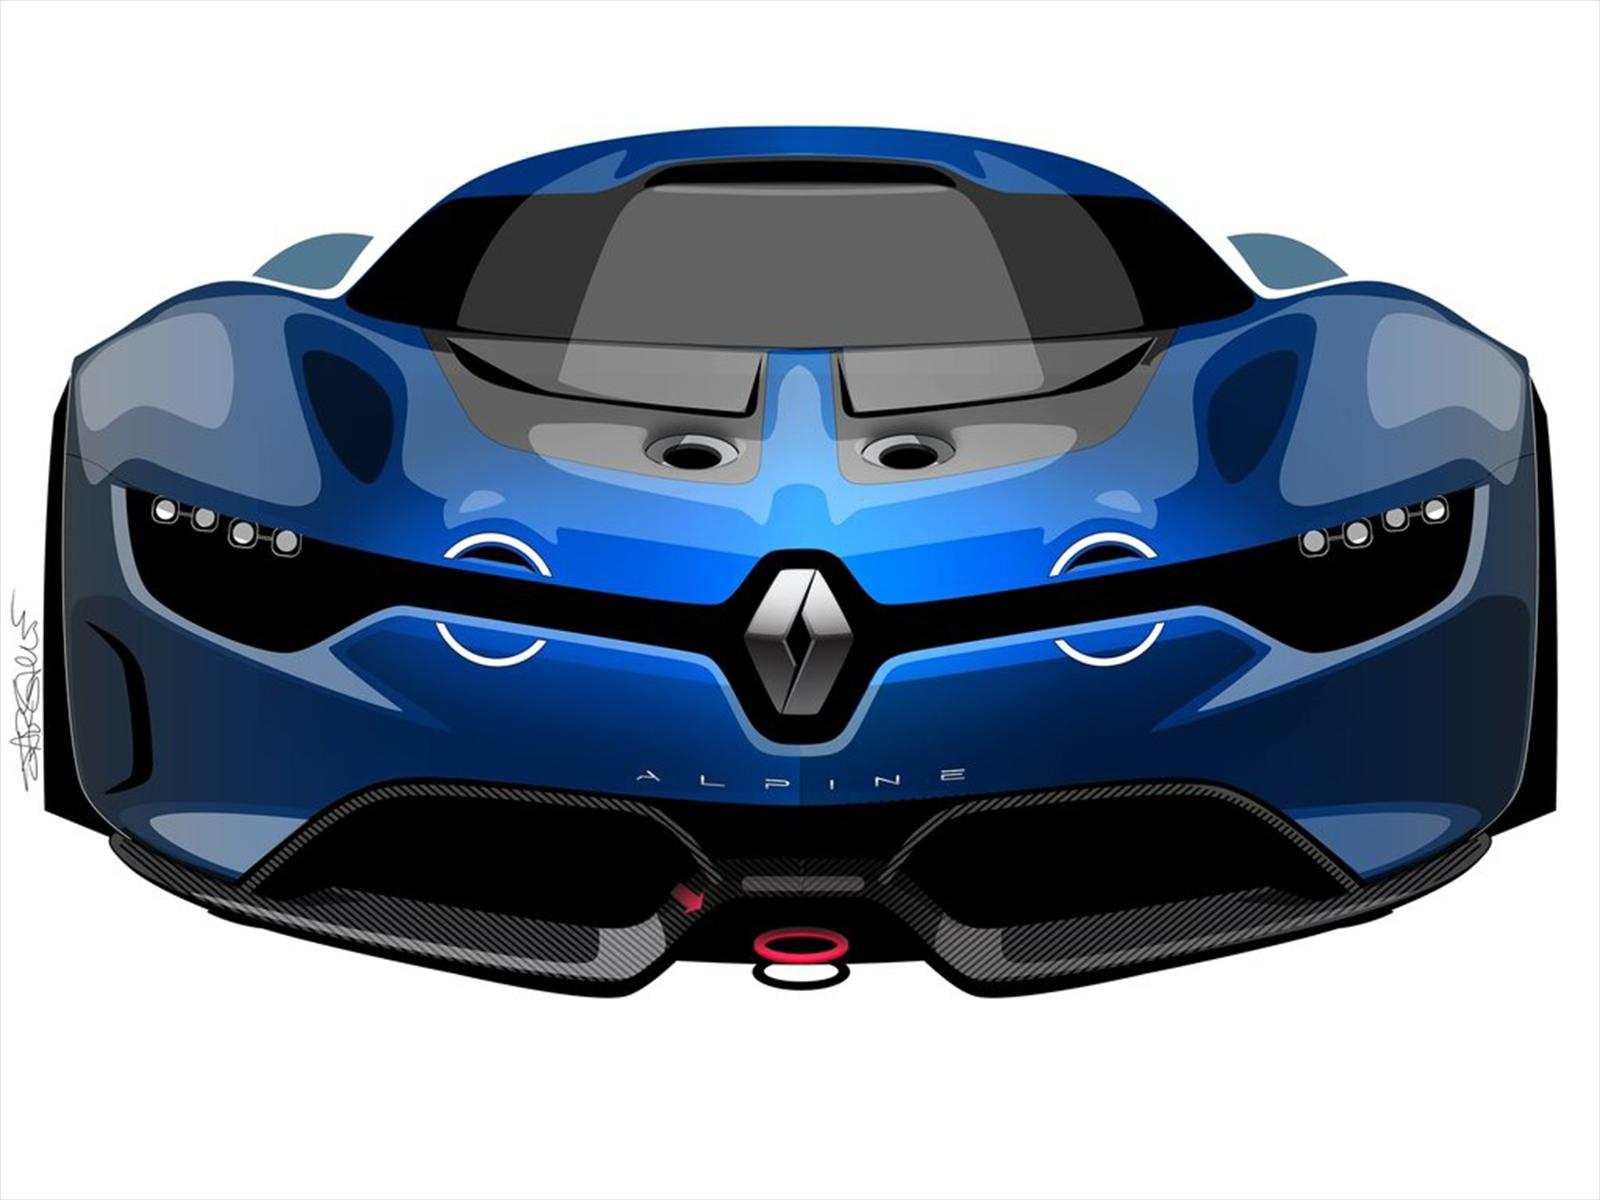 2019 Renault Alpine A 110 50 Concept photo - 6